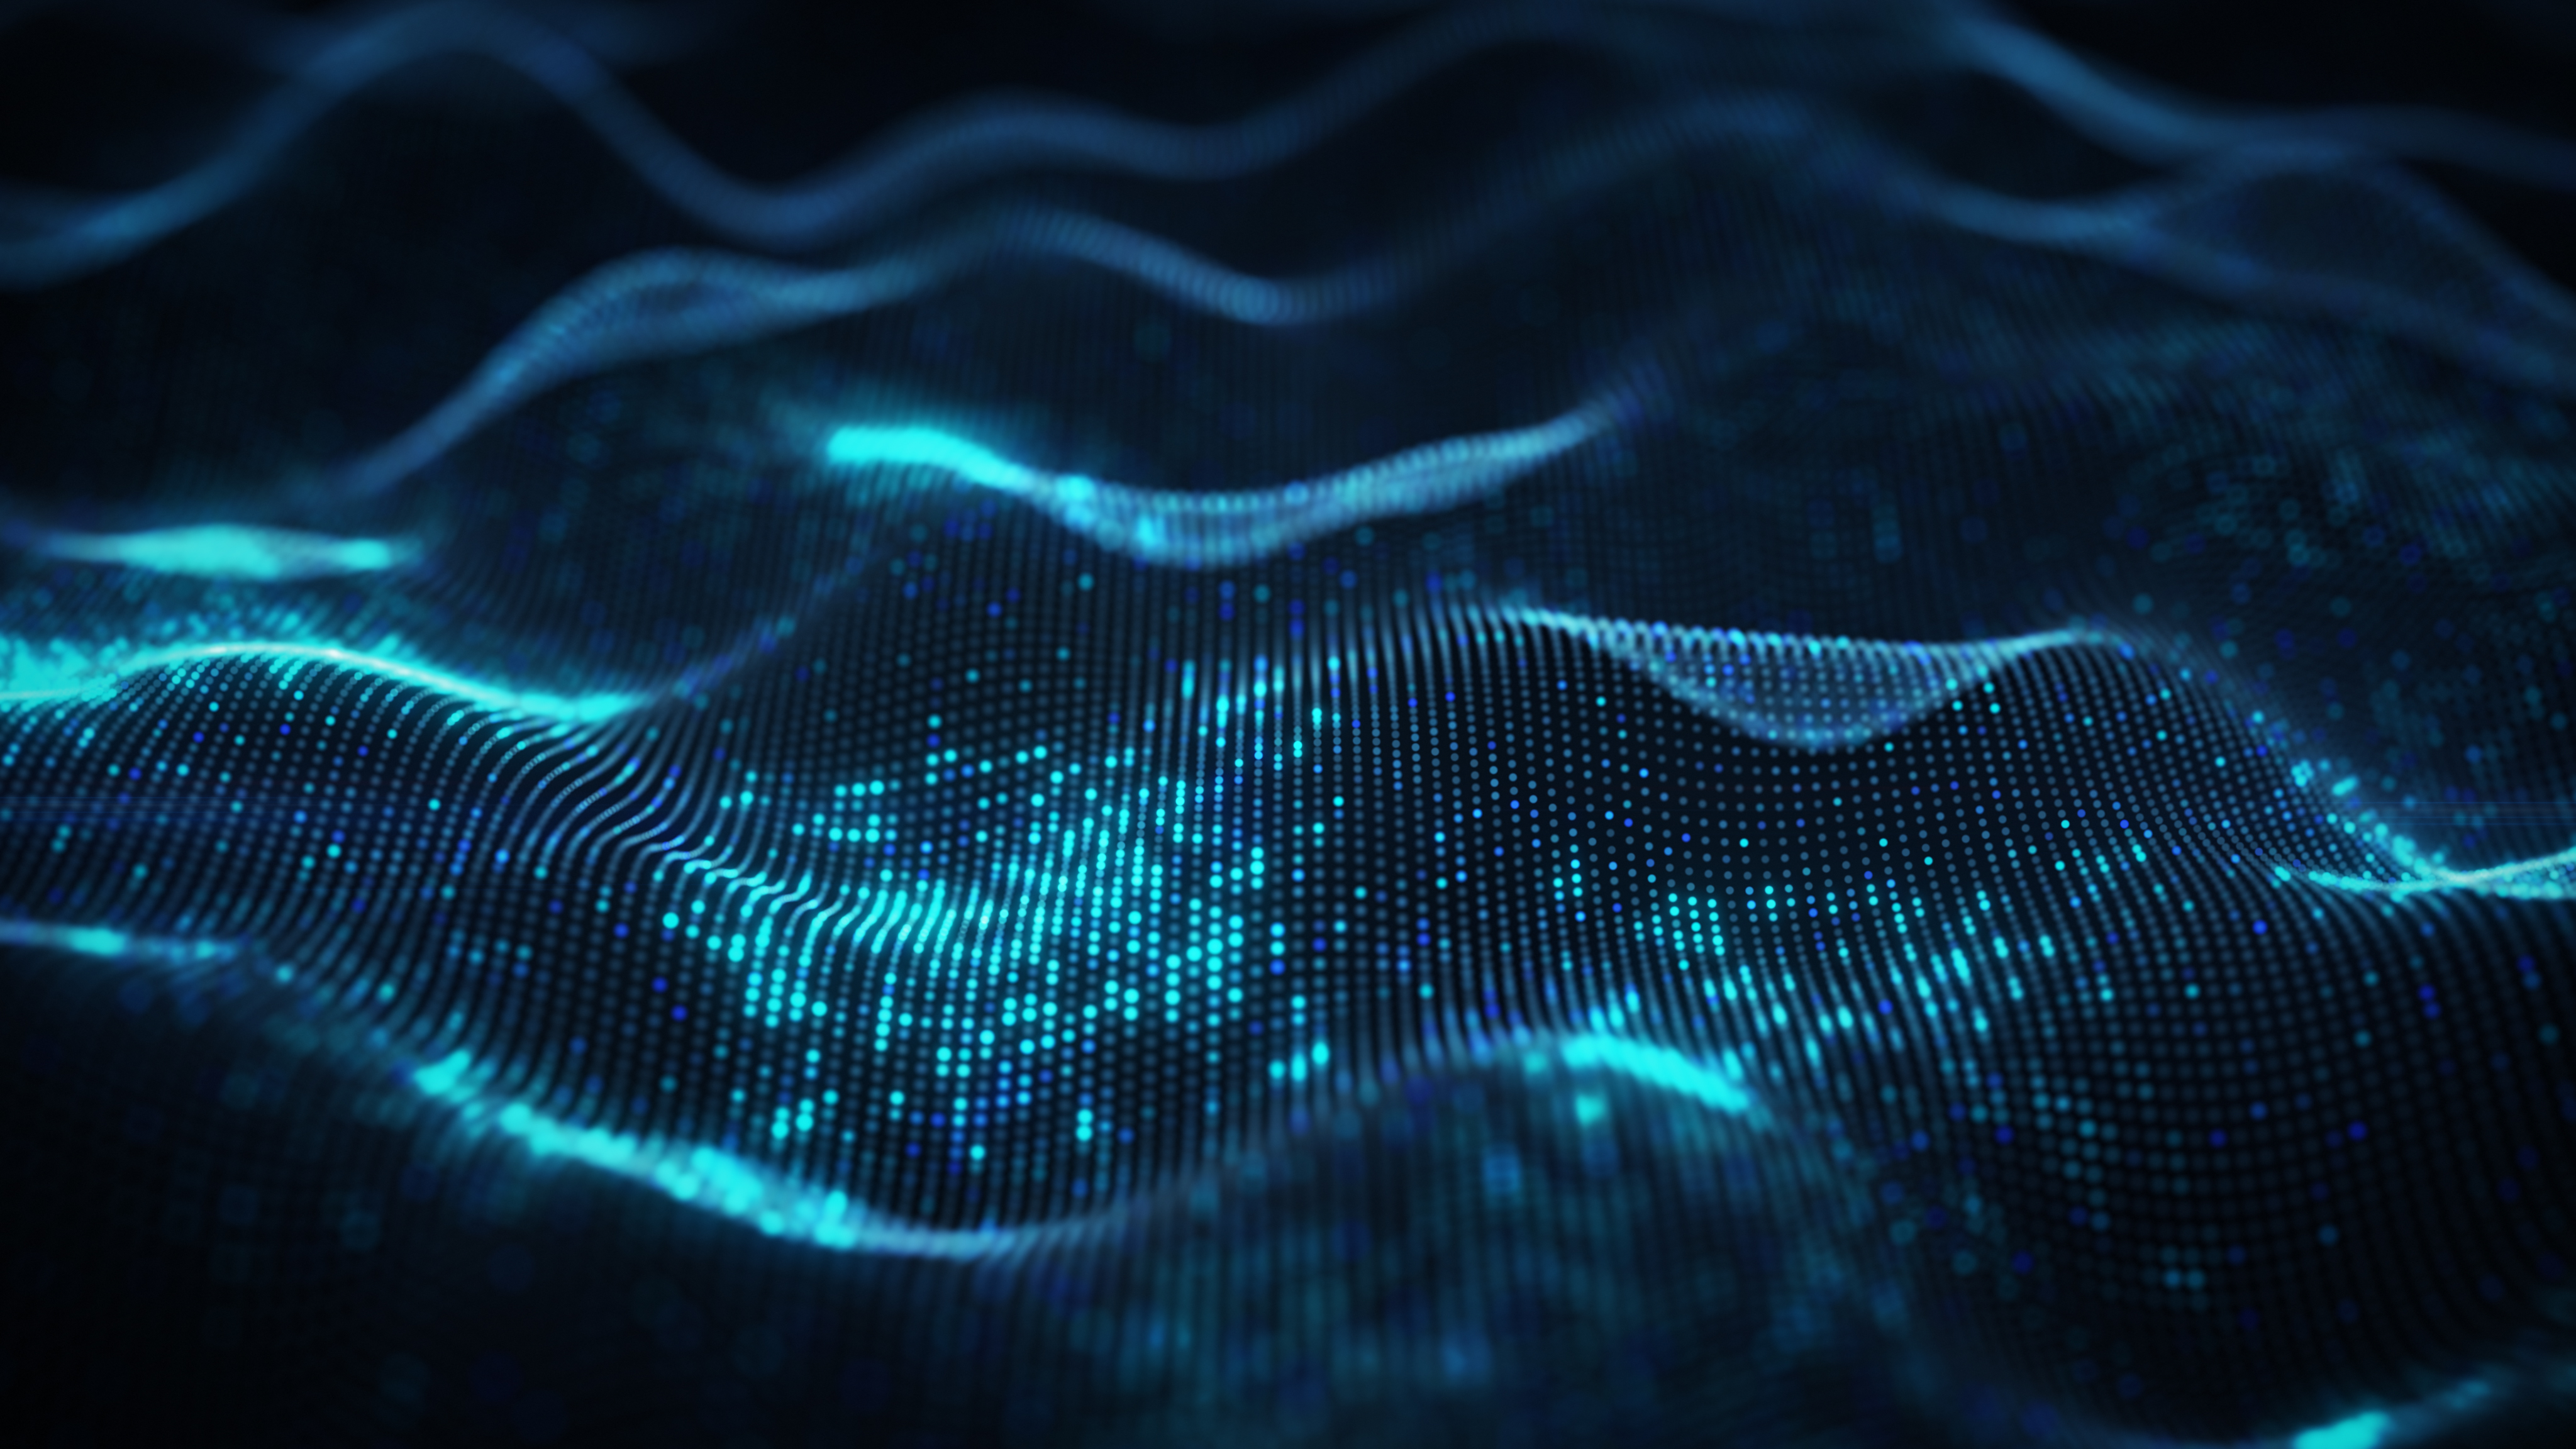 Abstract waves shape of dots. 3D rendering with DOF